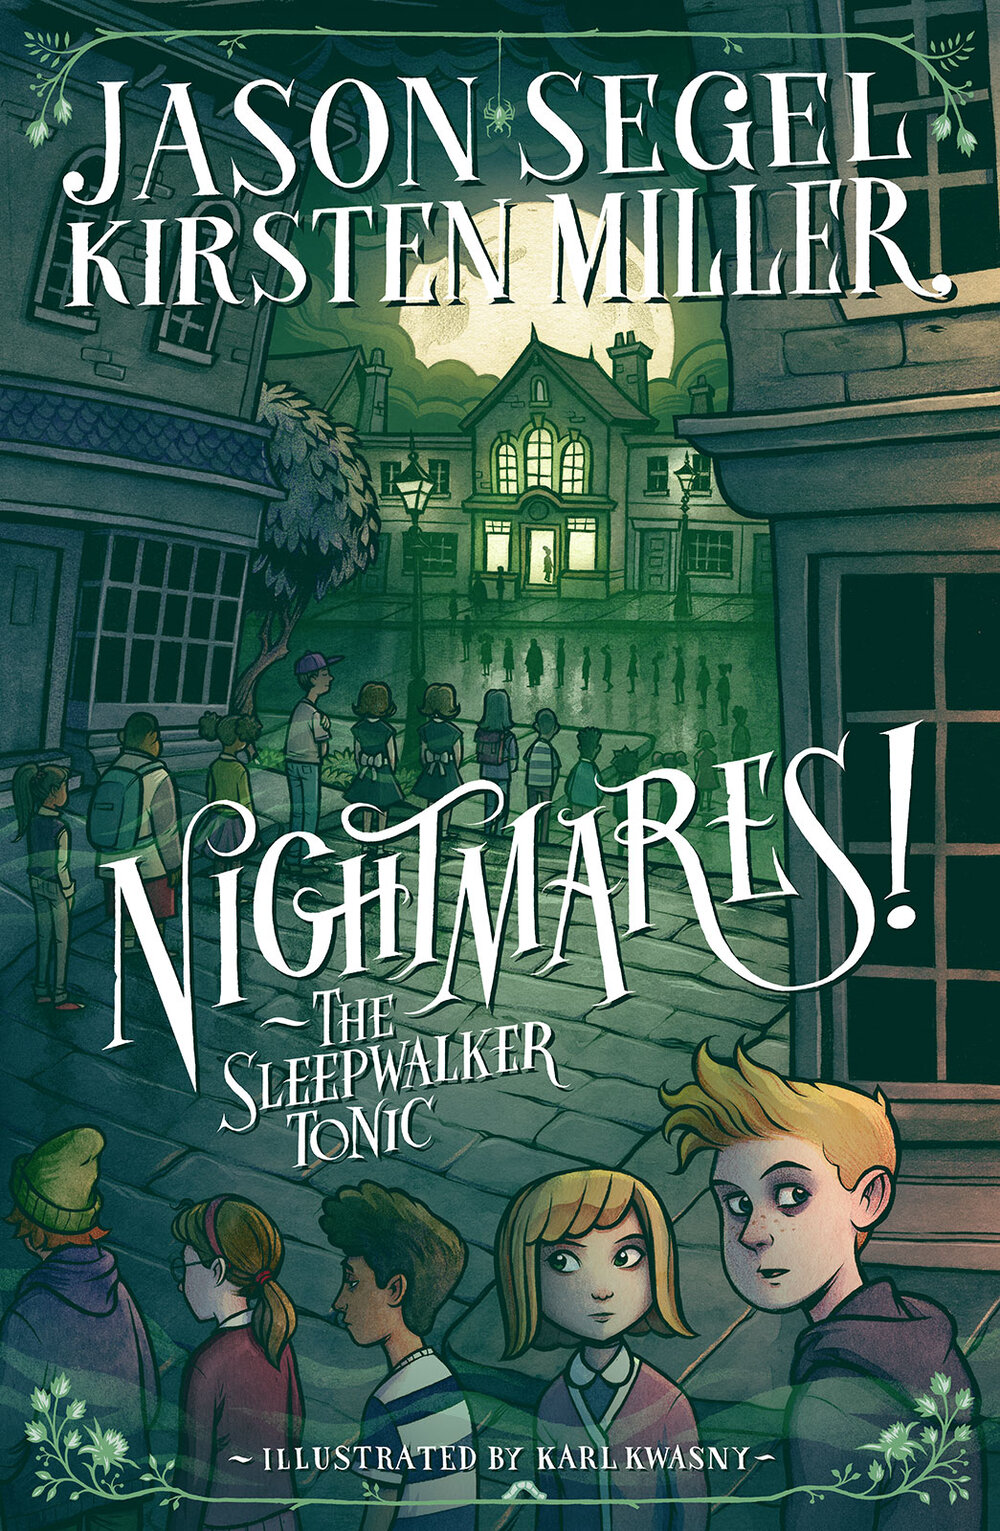 Cover for  Nightmares! II  by Jason Segel & Kirsten Miller